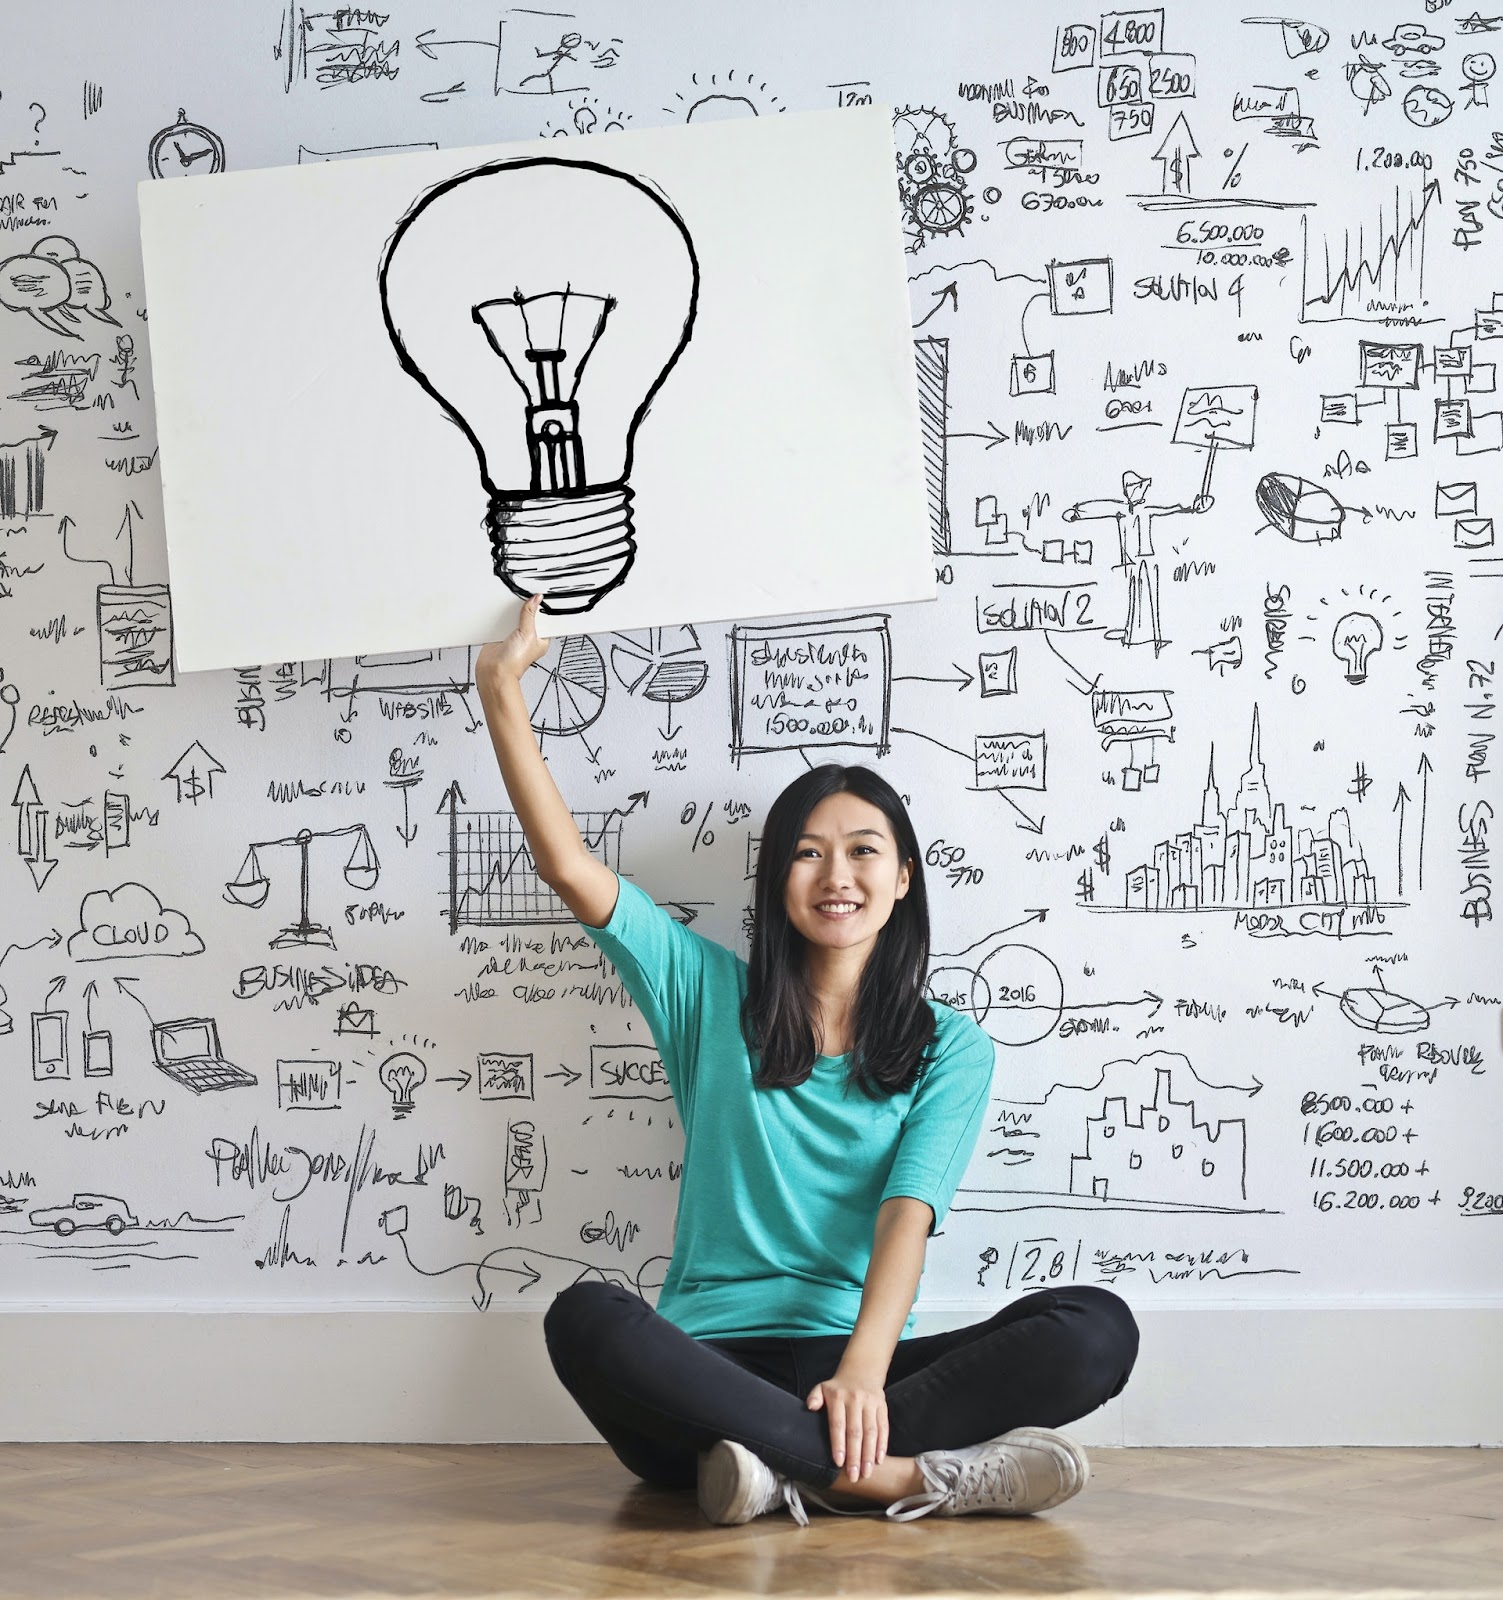 A smiling young woman holds a large poster with a light bulb on it. She is seated in front of a crowded vision board covered in ideas, topics, and how they all relate. Arrows, sketches, and words in black are visible on a white marker board.